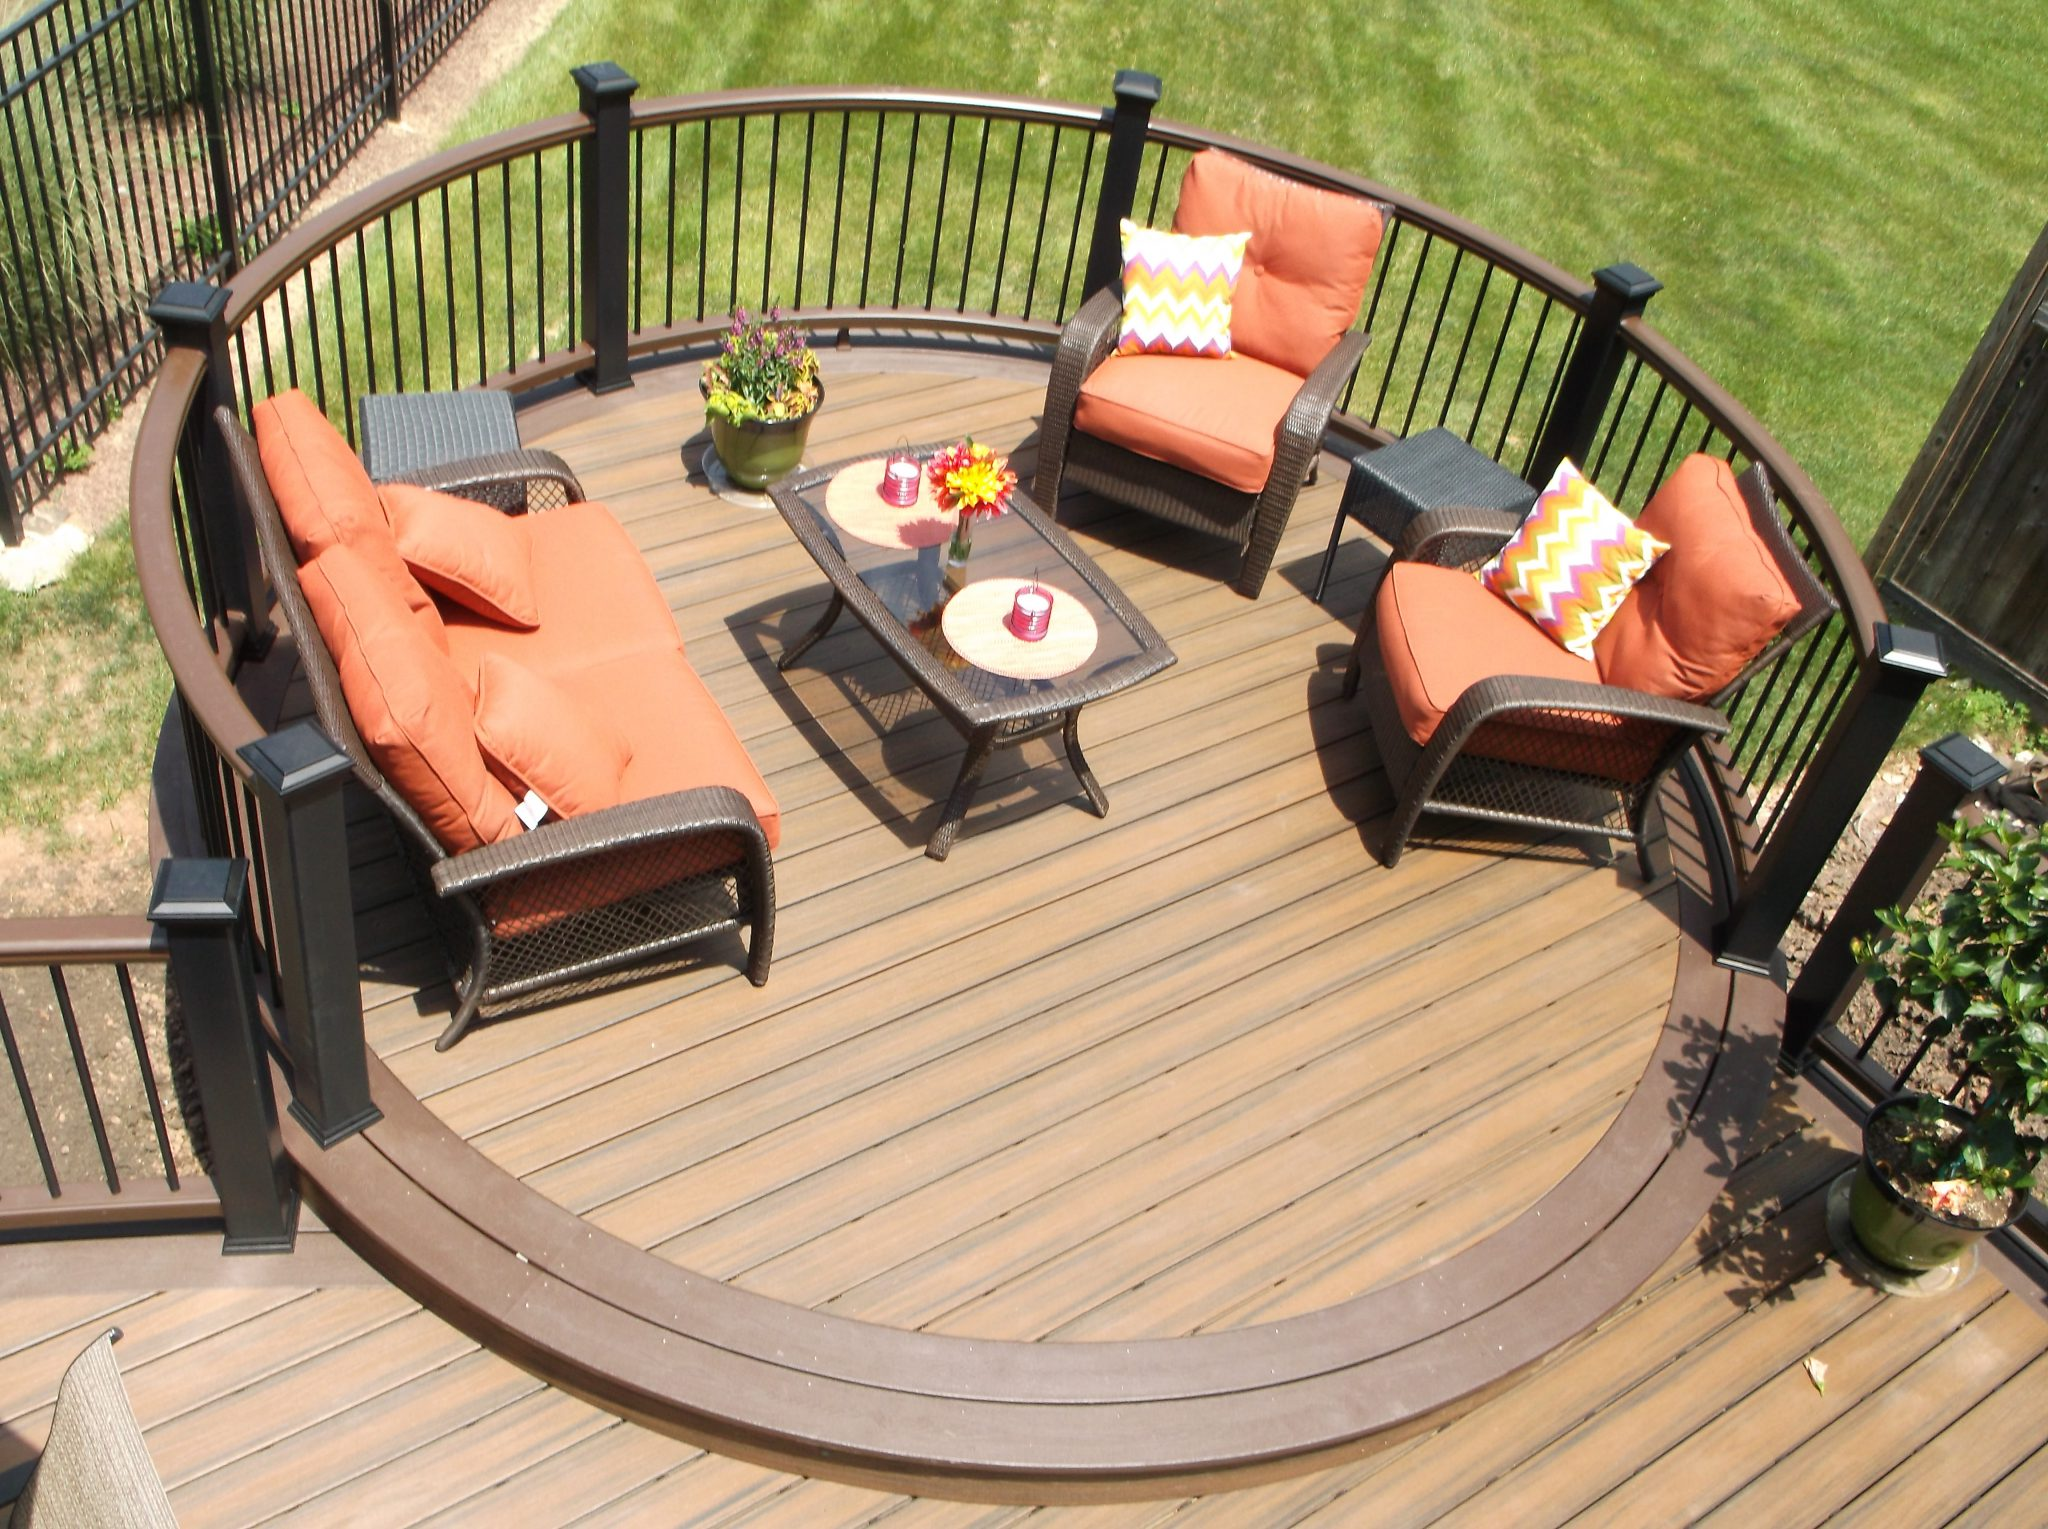 Deck Patterns for Curved Deck Designs- Amazing Deck